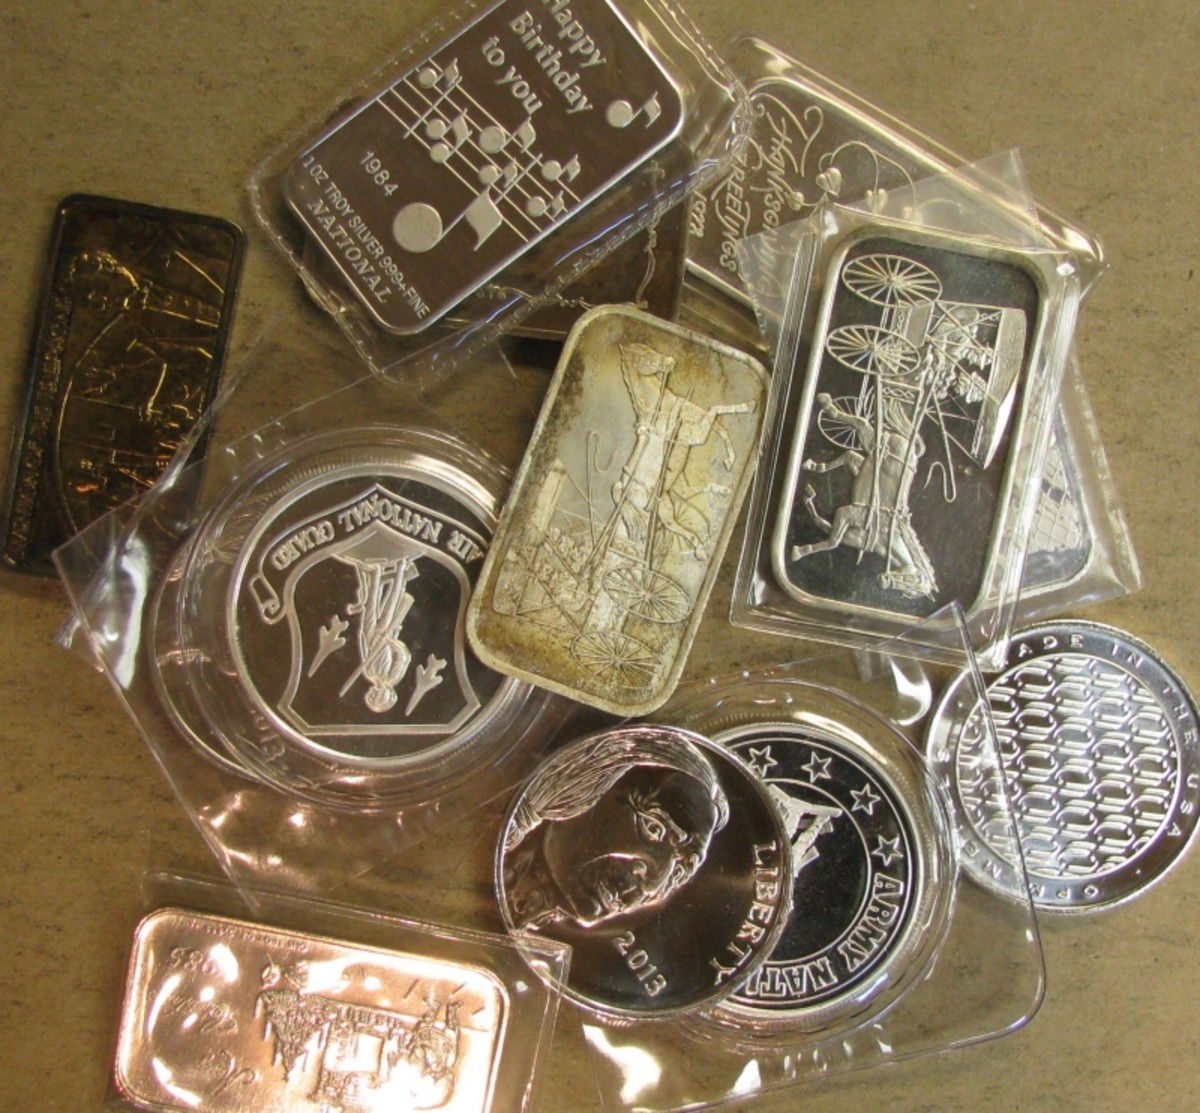 Buying and Selling Silver Bullion the Smart Way ToughNickel